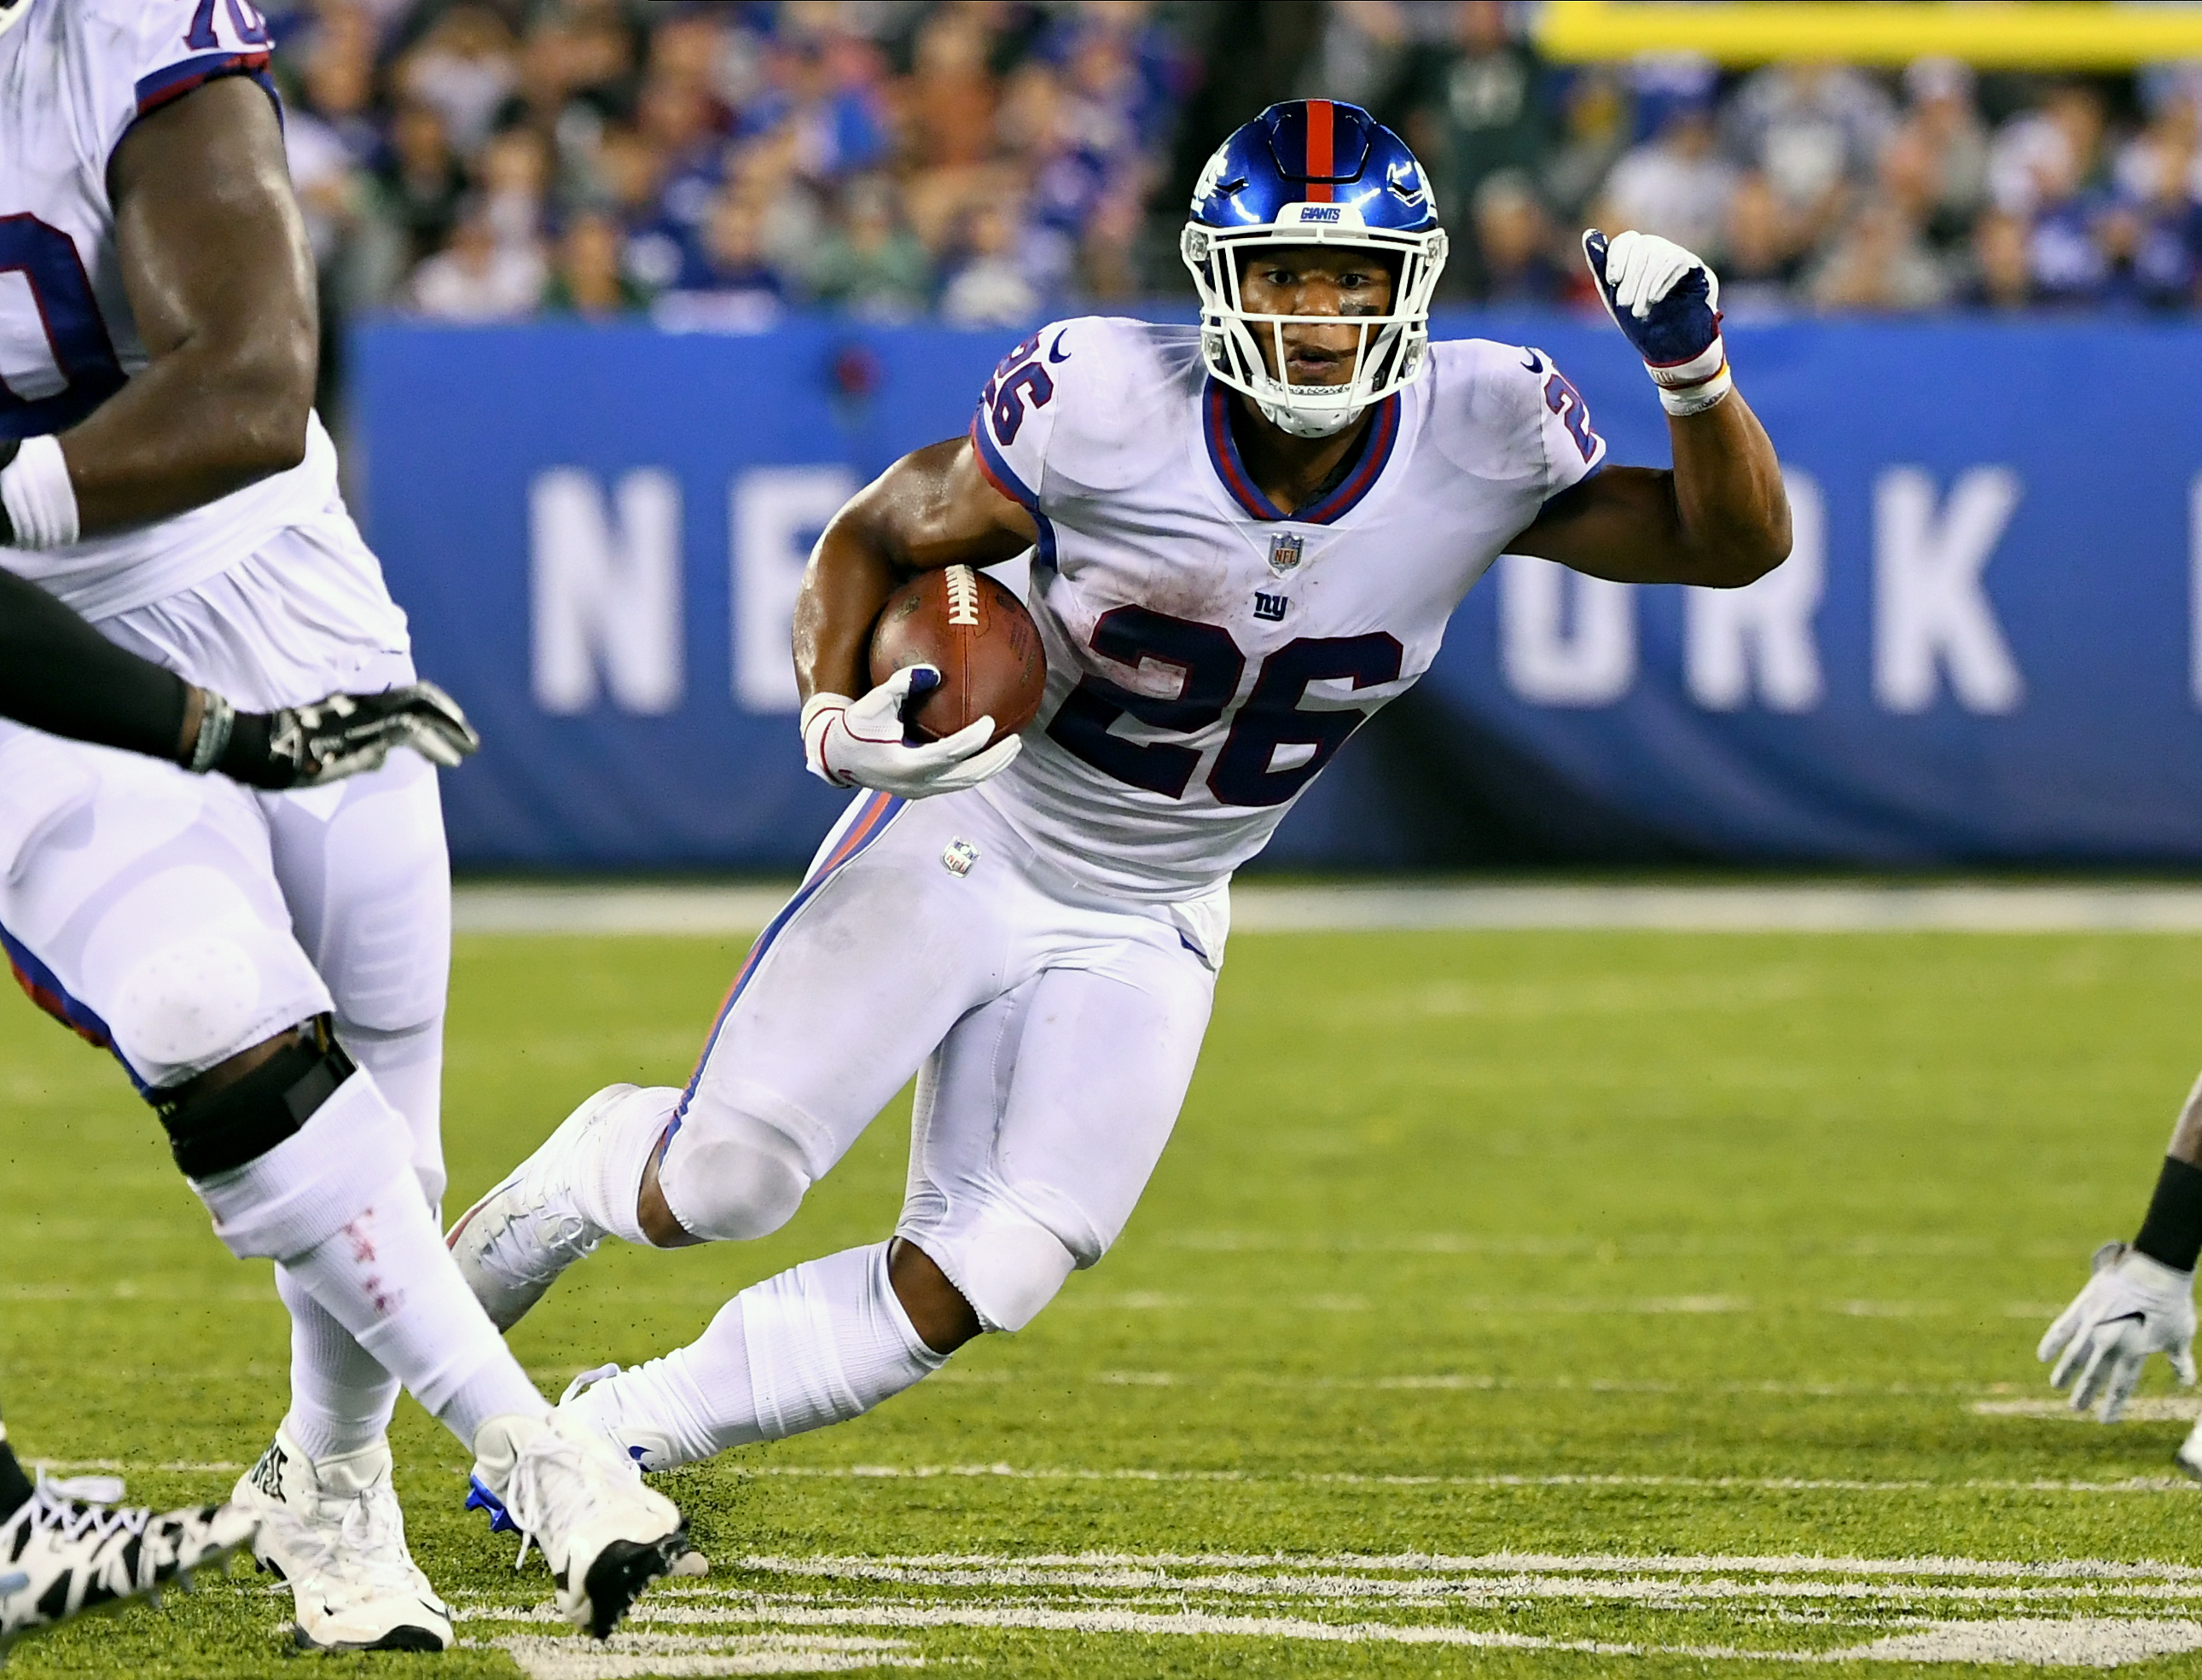 New York Giants season is a mess, but Saquon Barkley has ability to be the best